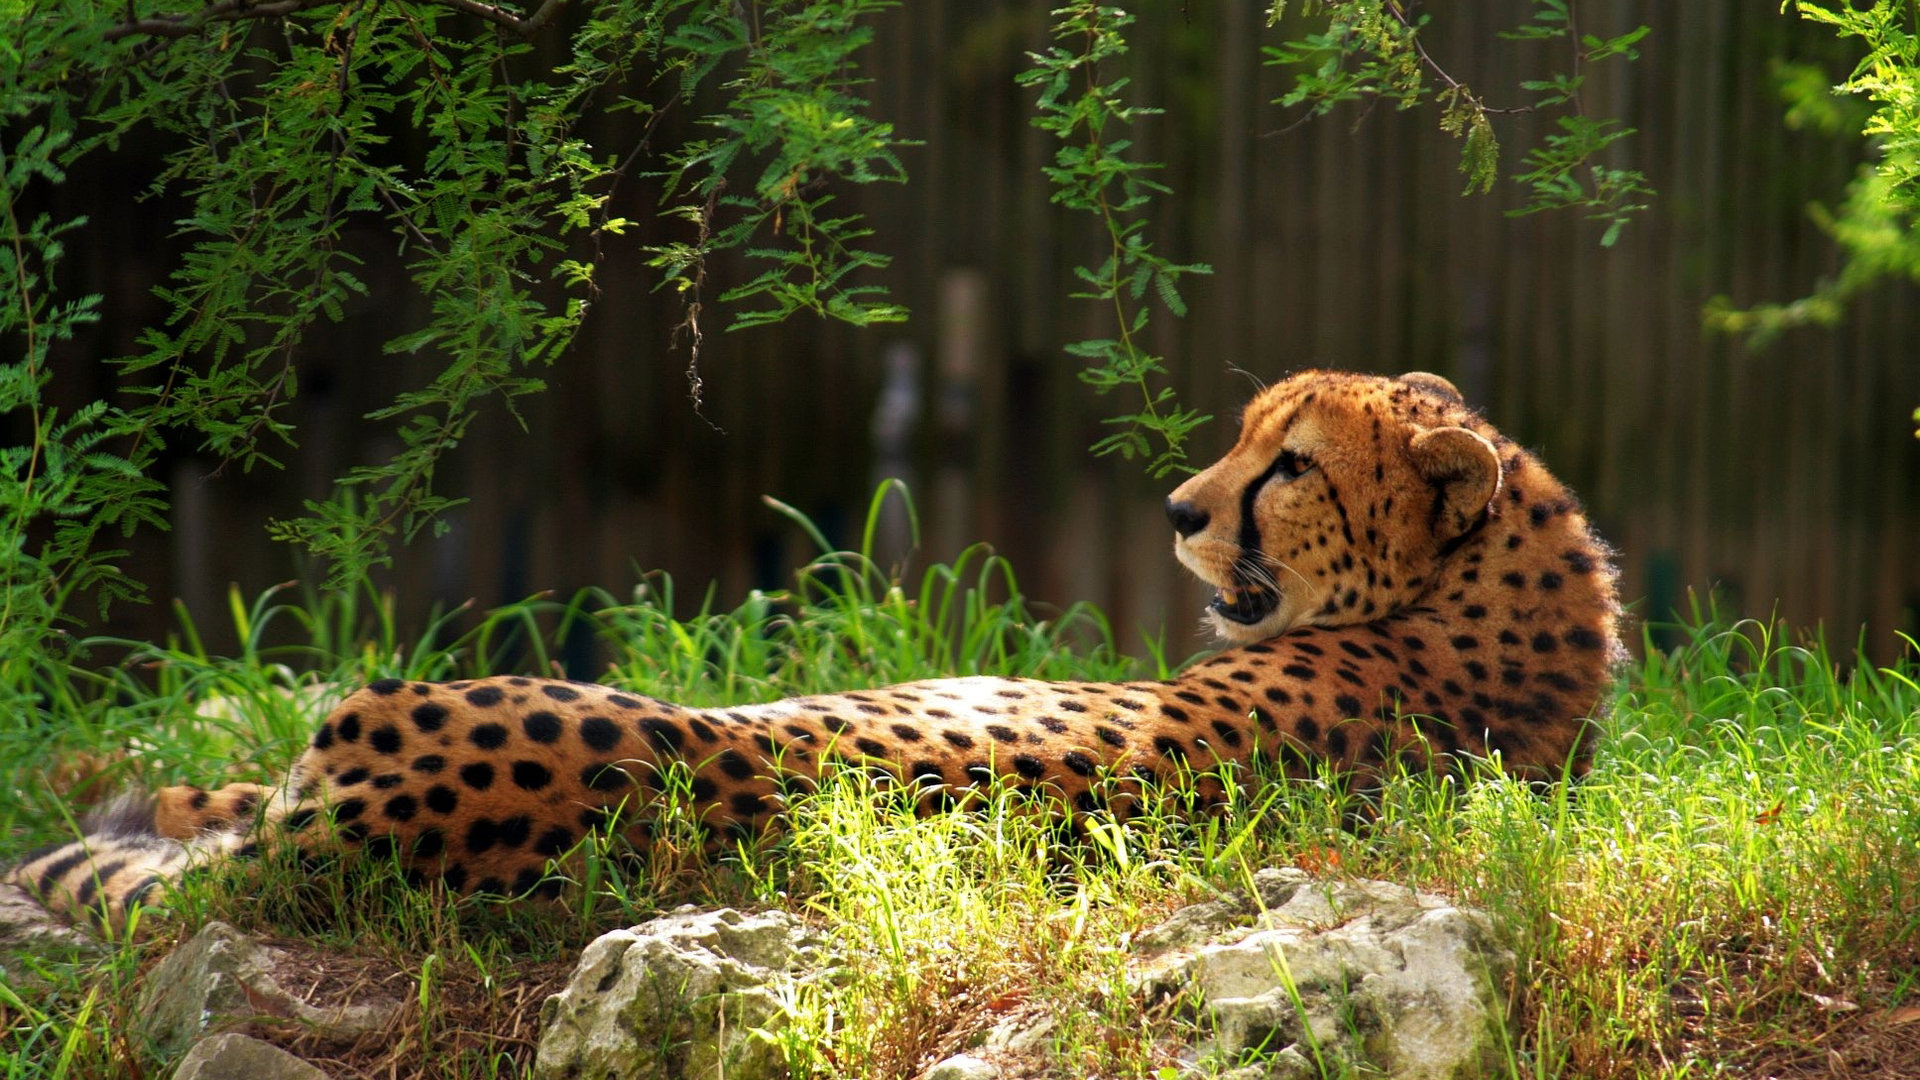 Awesome Cheetah free wallpaper ID:161739 for hd 1920x1080 desktop